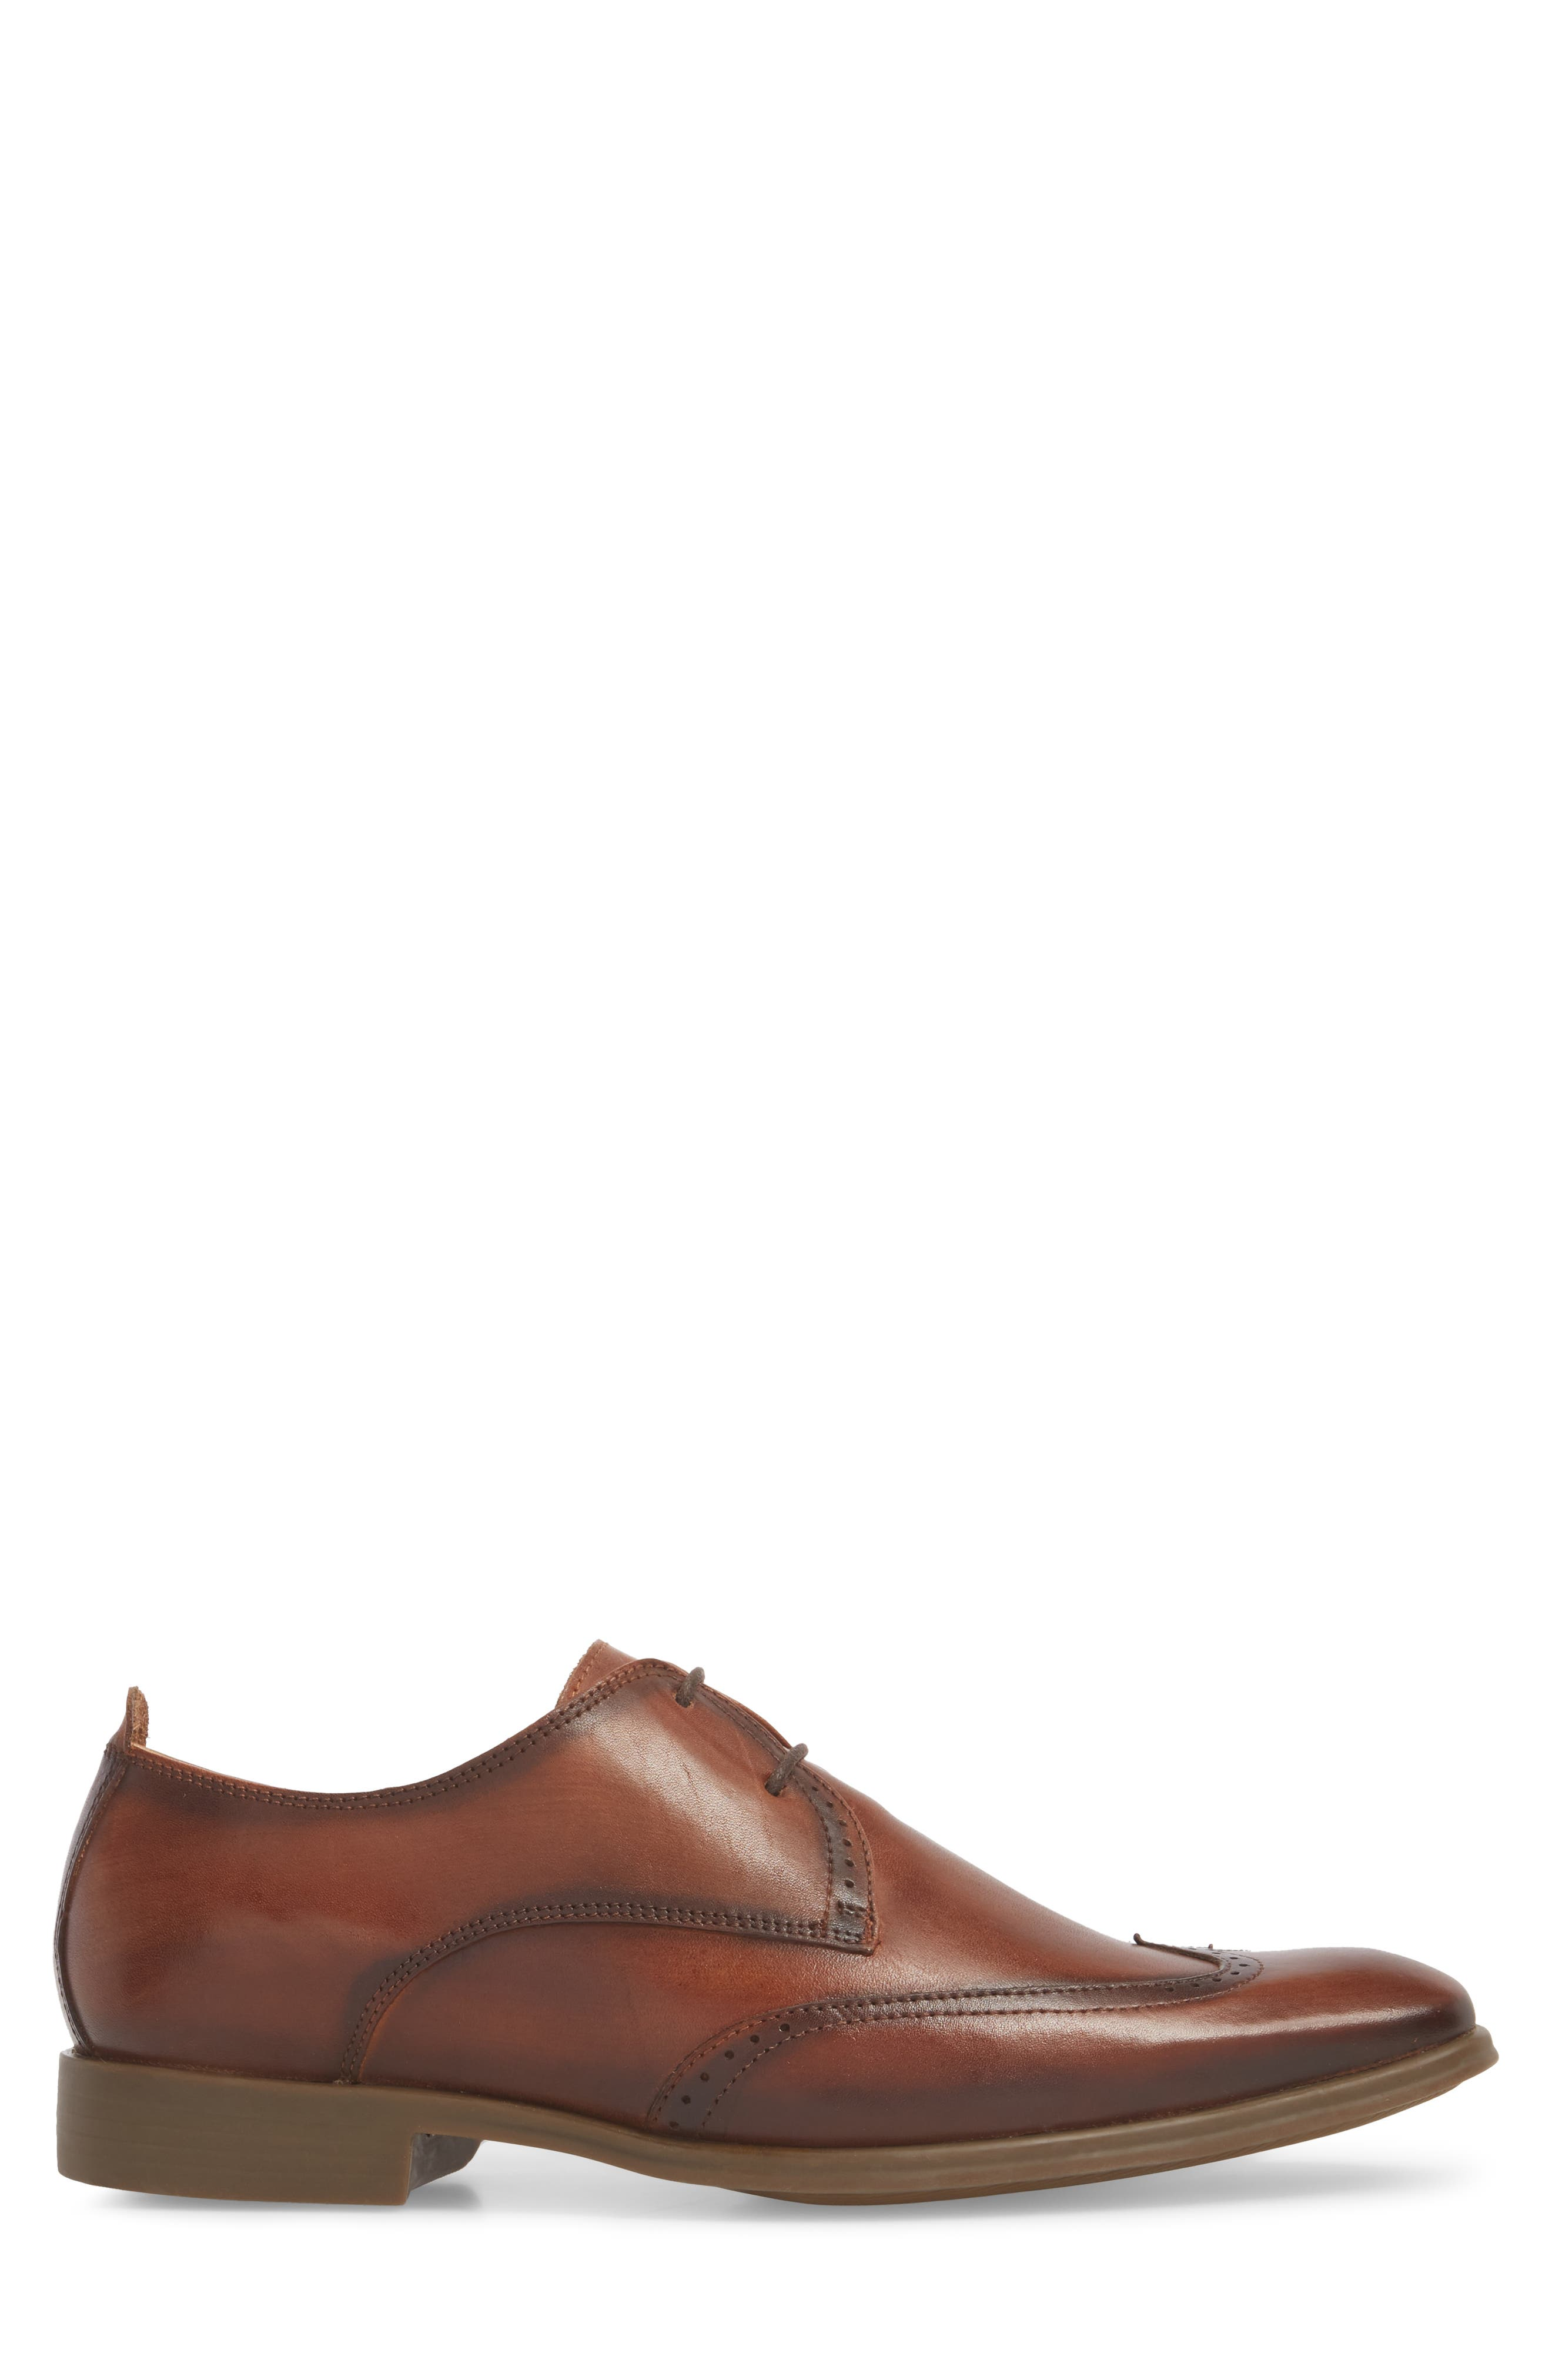 Ben Wingtip Derby,                             Alternate thumbnail 3, color,                             TOUCH BRONZE BRUSHED LEATHER